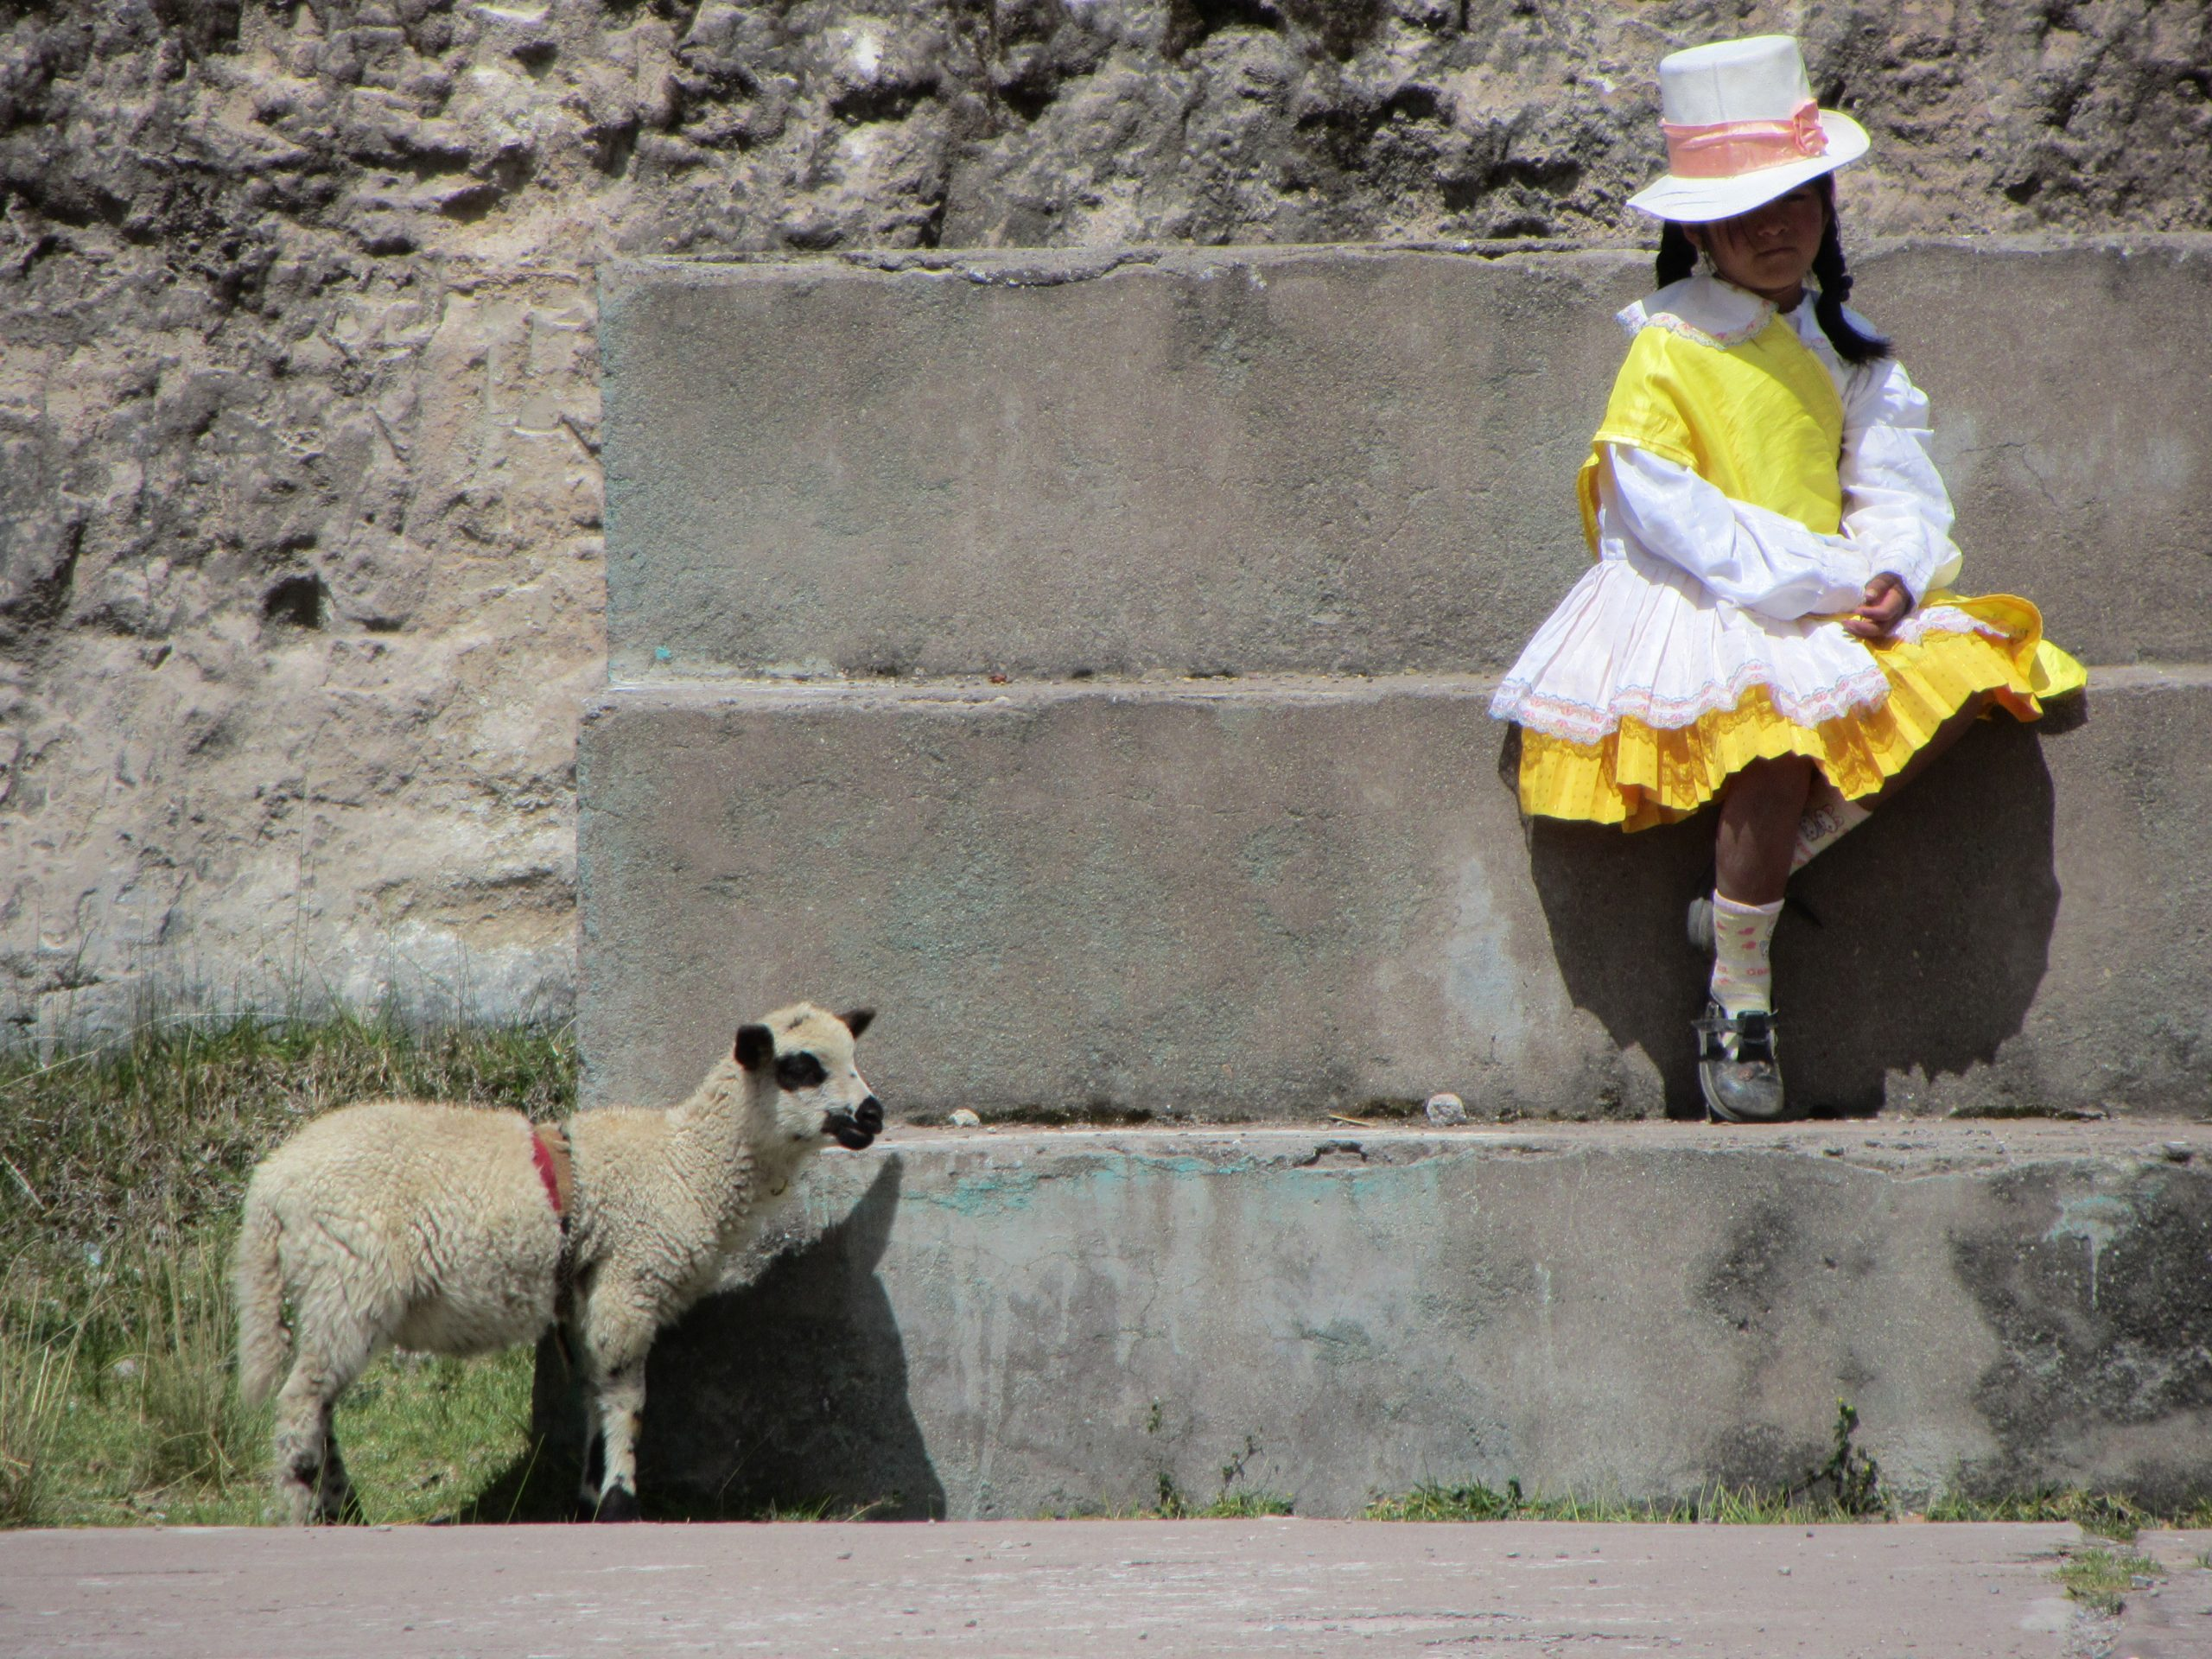 Josh Yoder's photo of a girl and a sheep outside a school in Peru